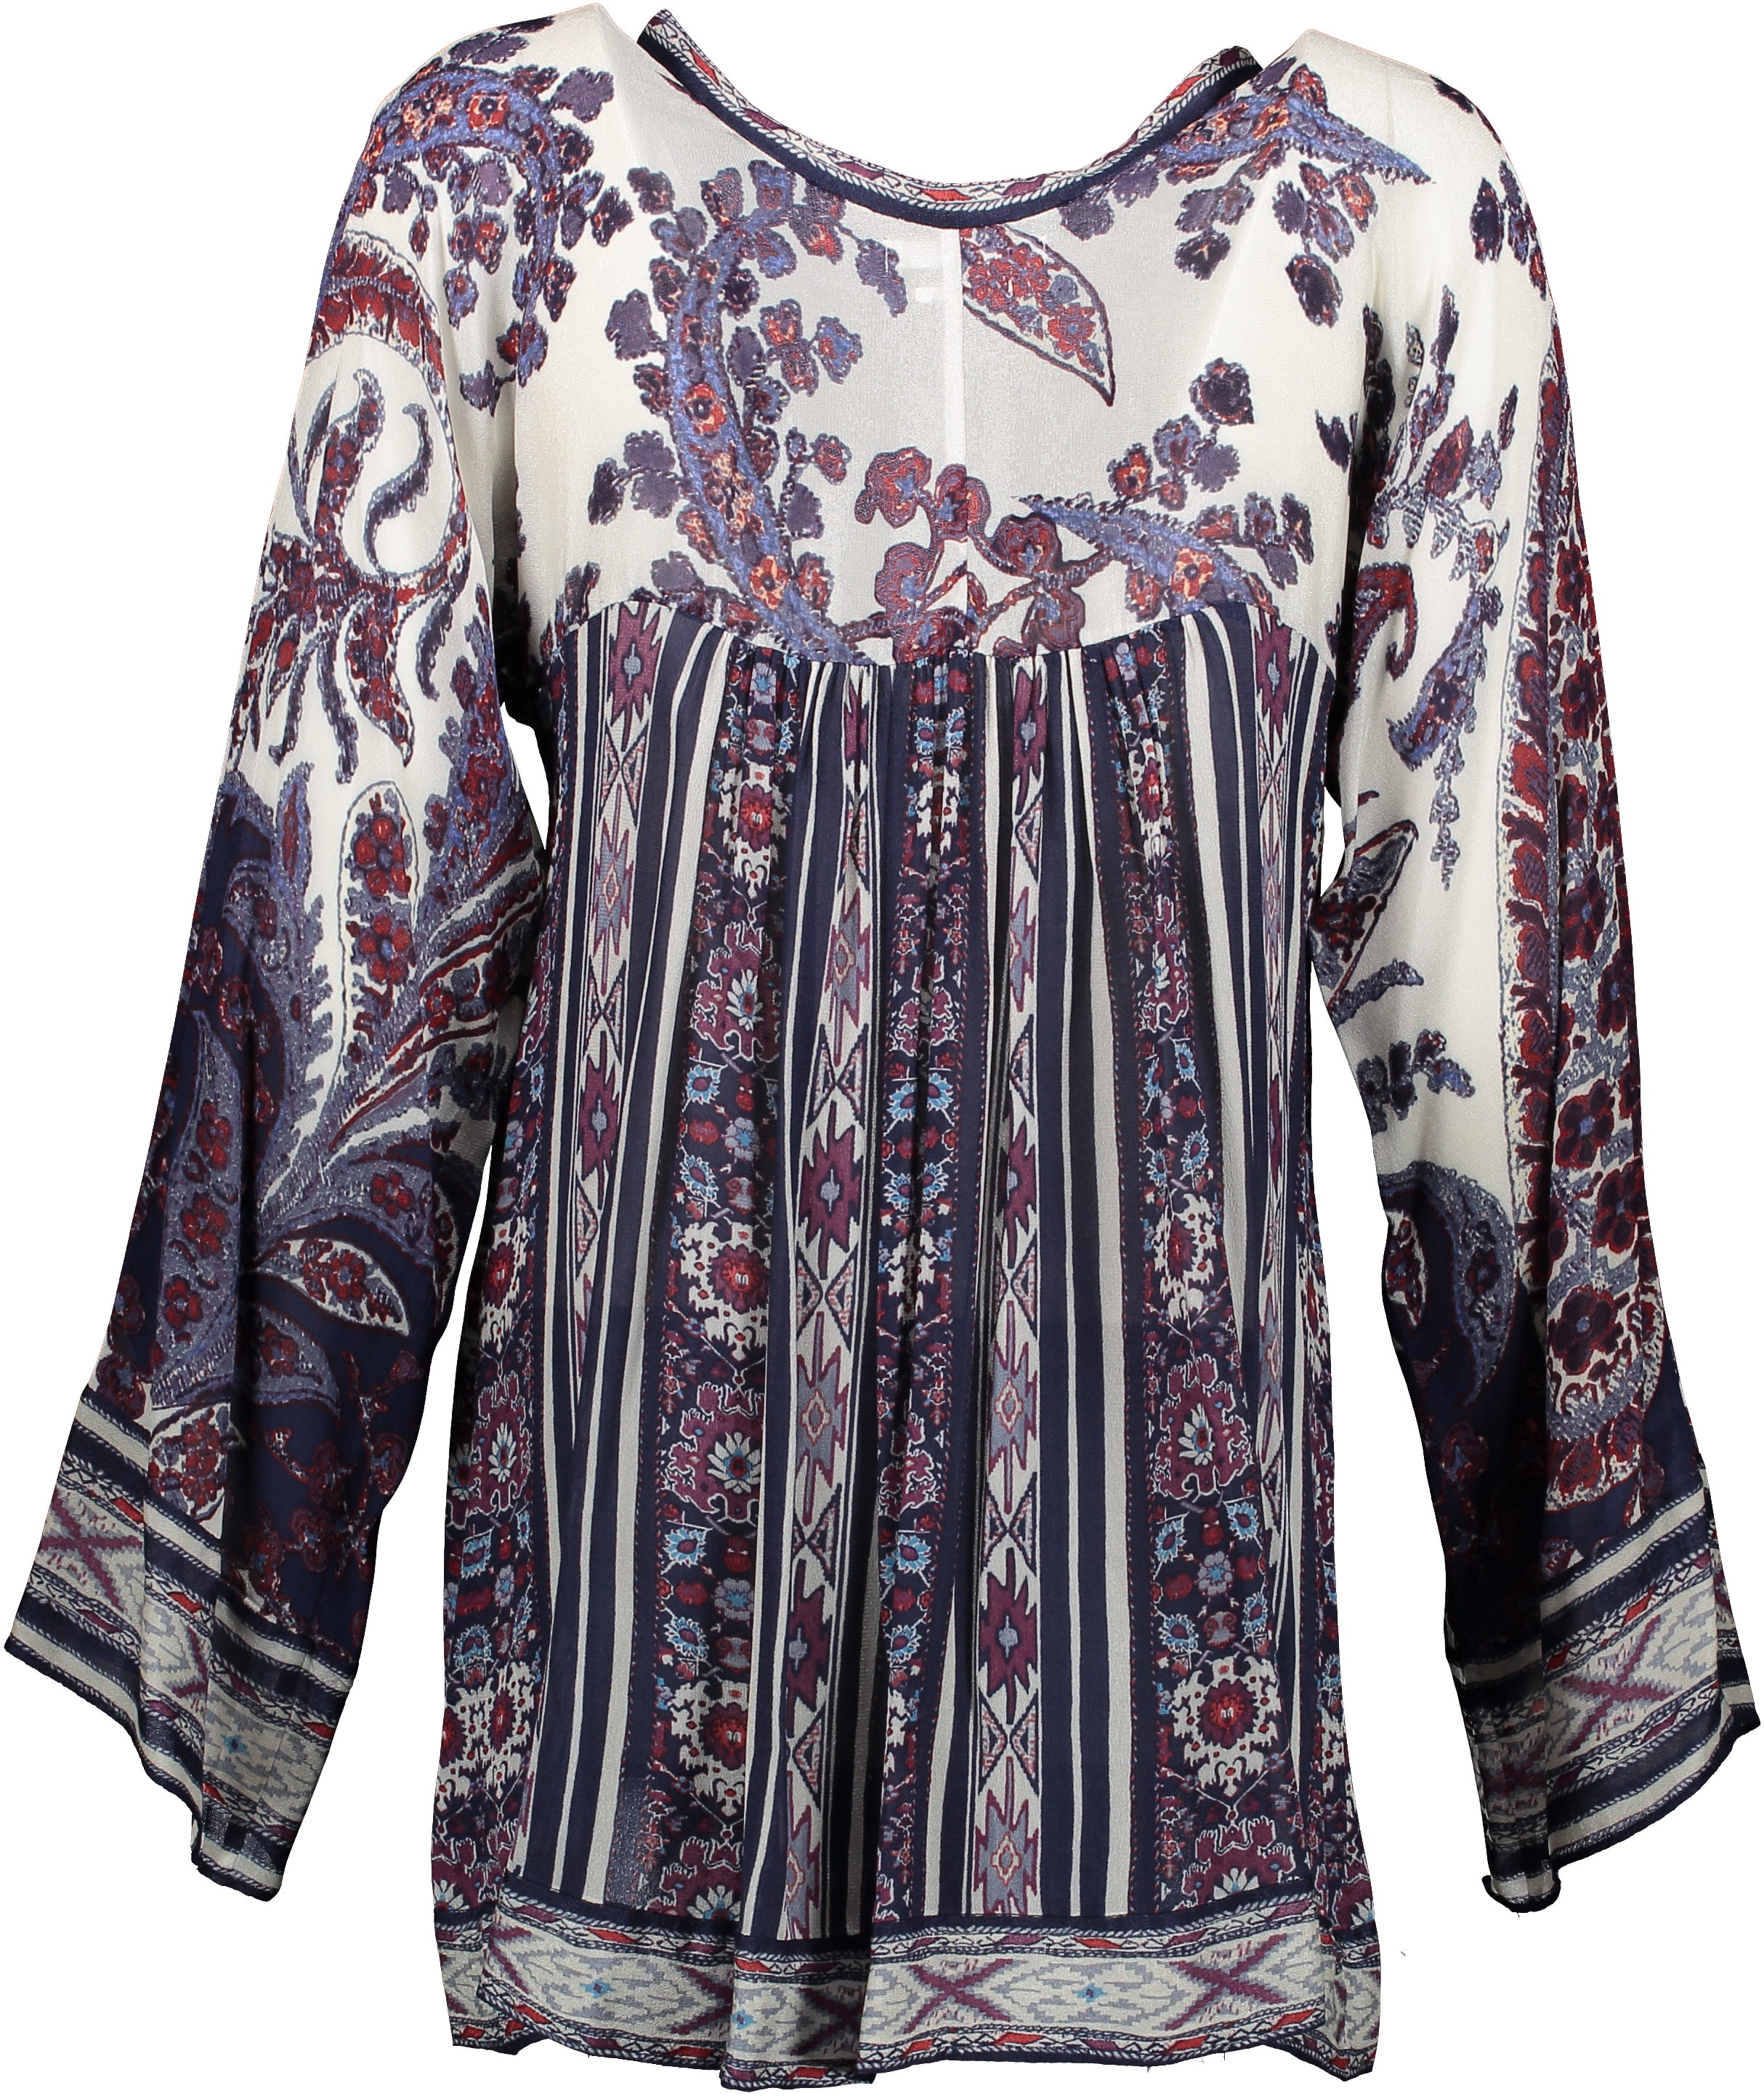 Isabel Marant Étoile Long Sleeve V-neck Blouse - SIZE 1. Buy authentic secondhand clothing from Isabel Marant online at LabelLOV. Safe payment. Bohemian Top.